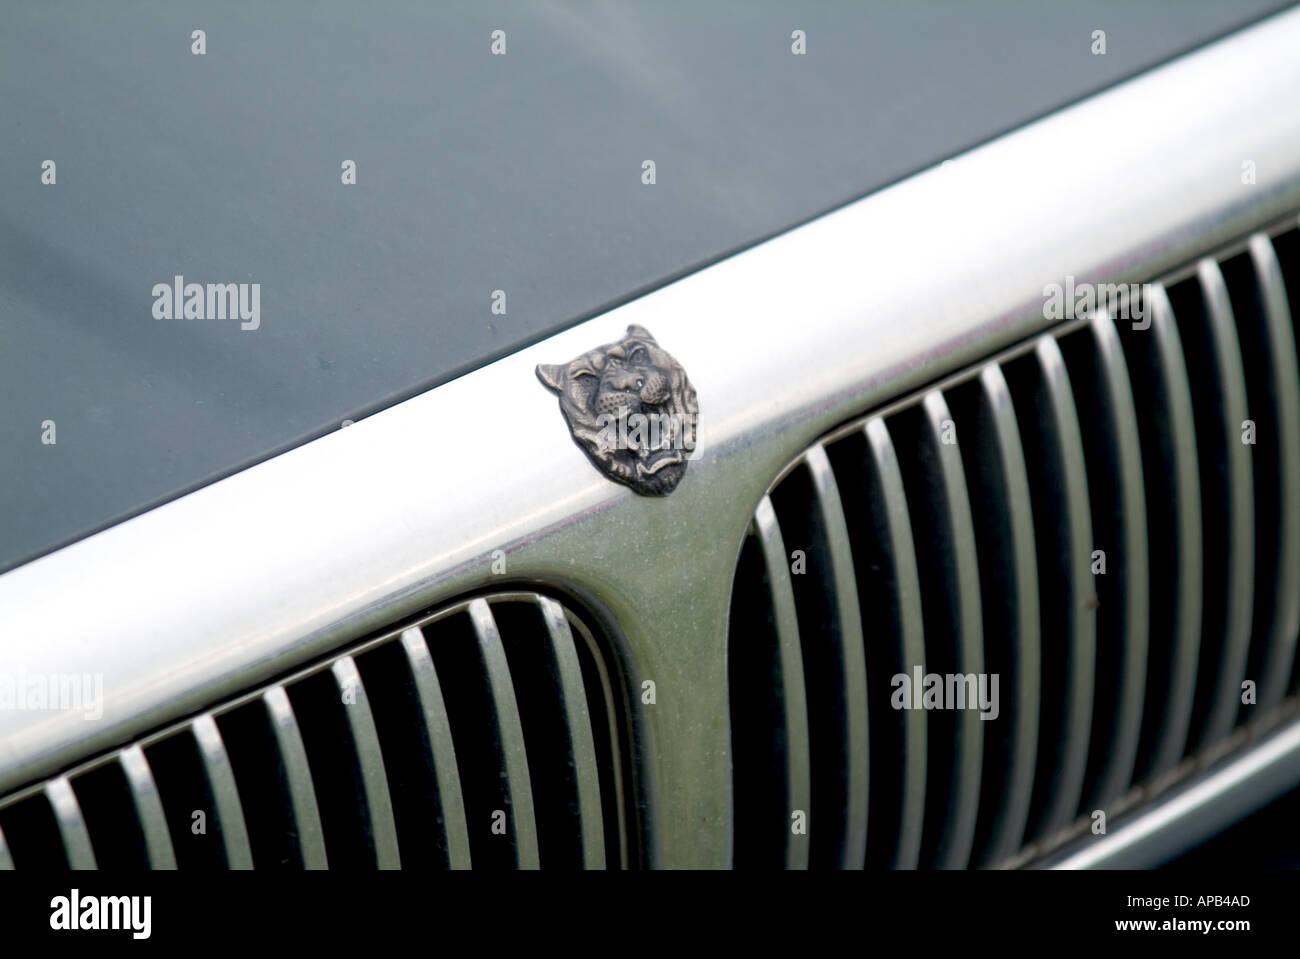 Jaguar Auto Abzeichen Luxus Ford motor Company FoMoCo Coventry England grill Englisch Stockbild